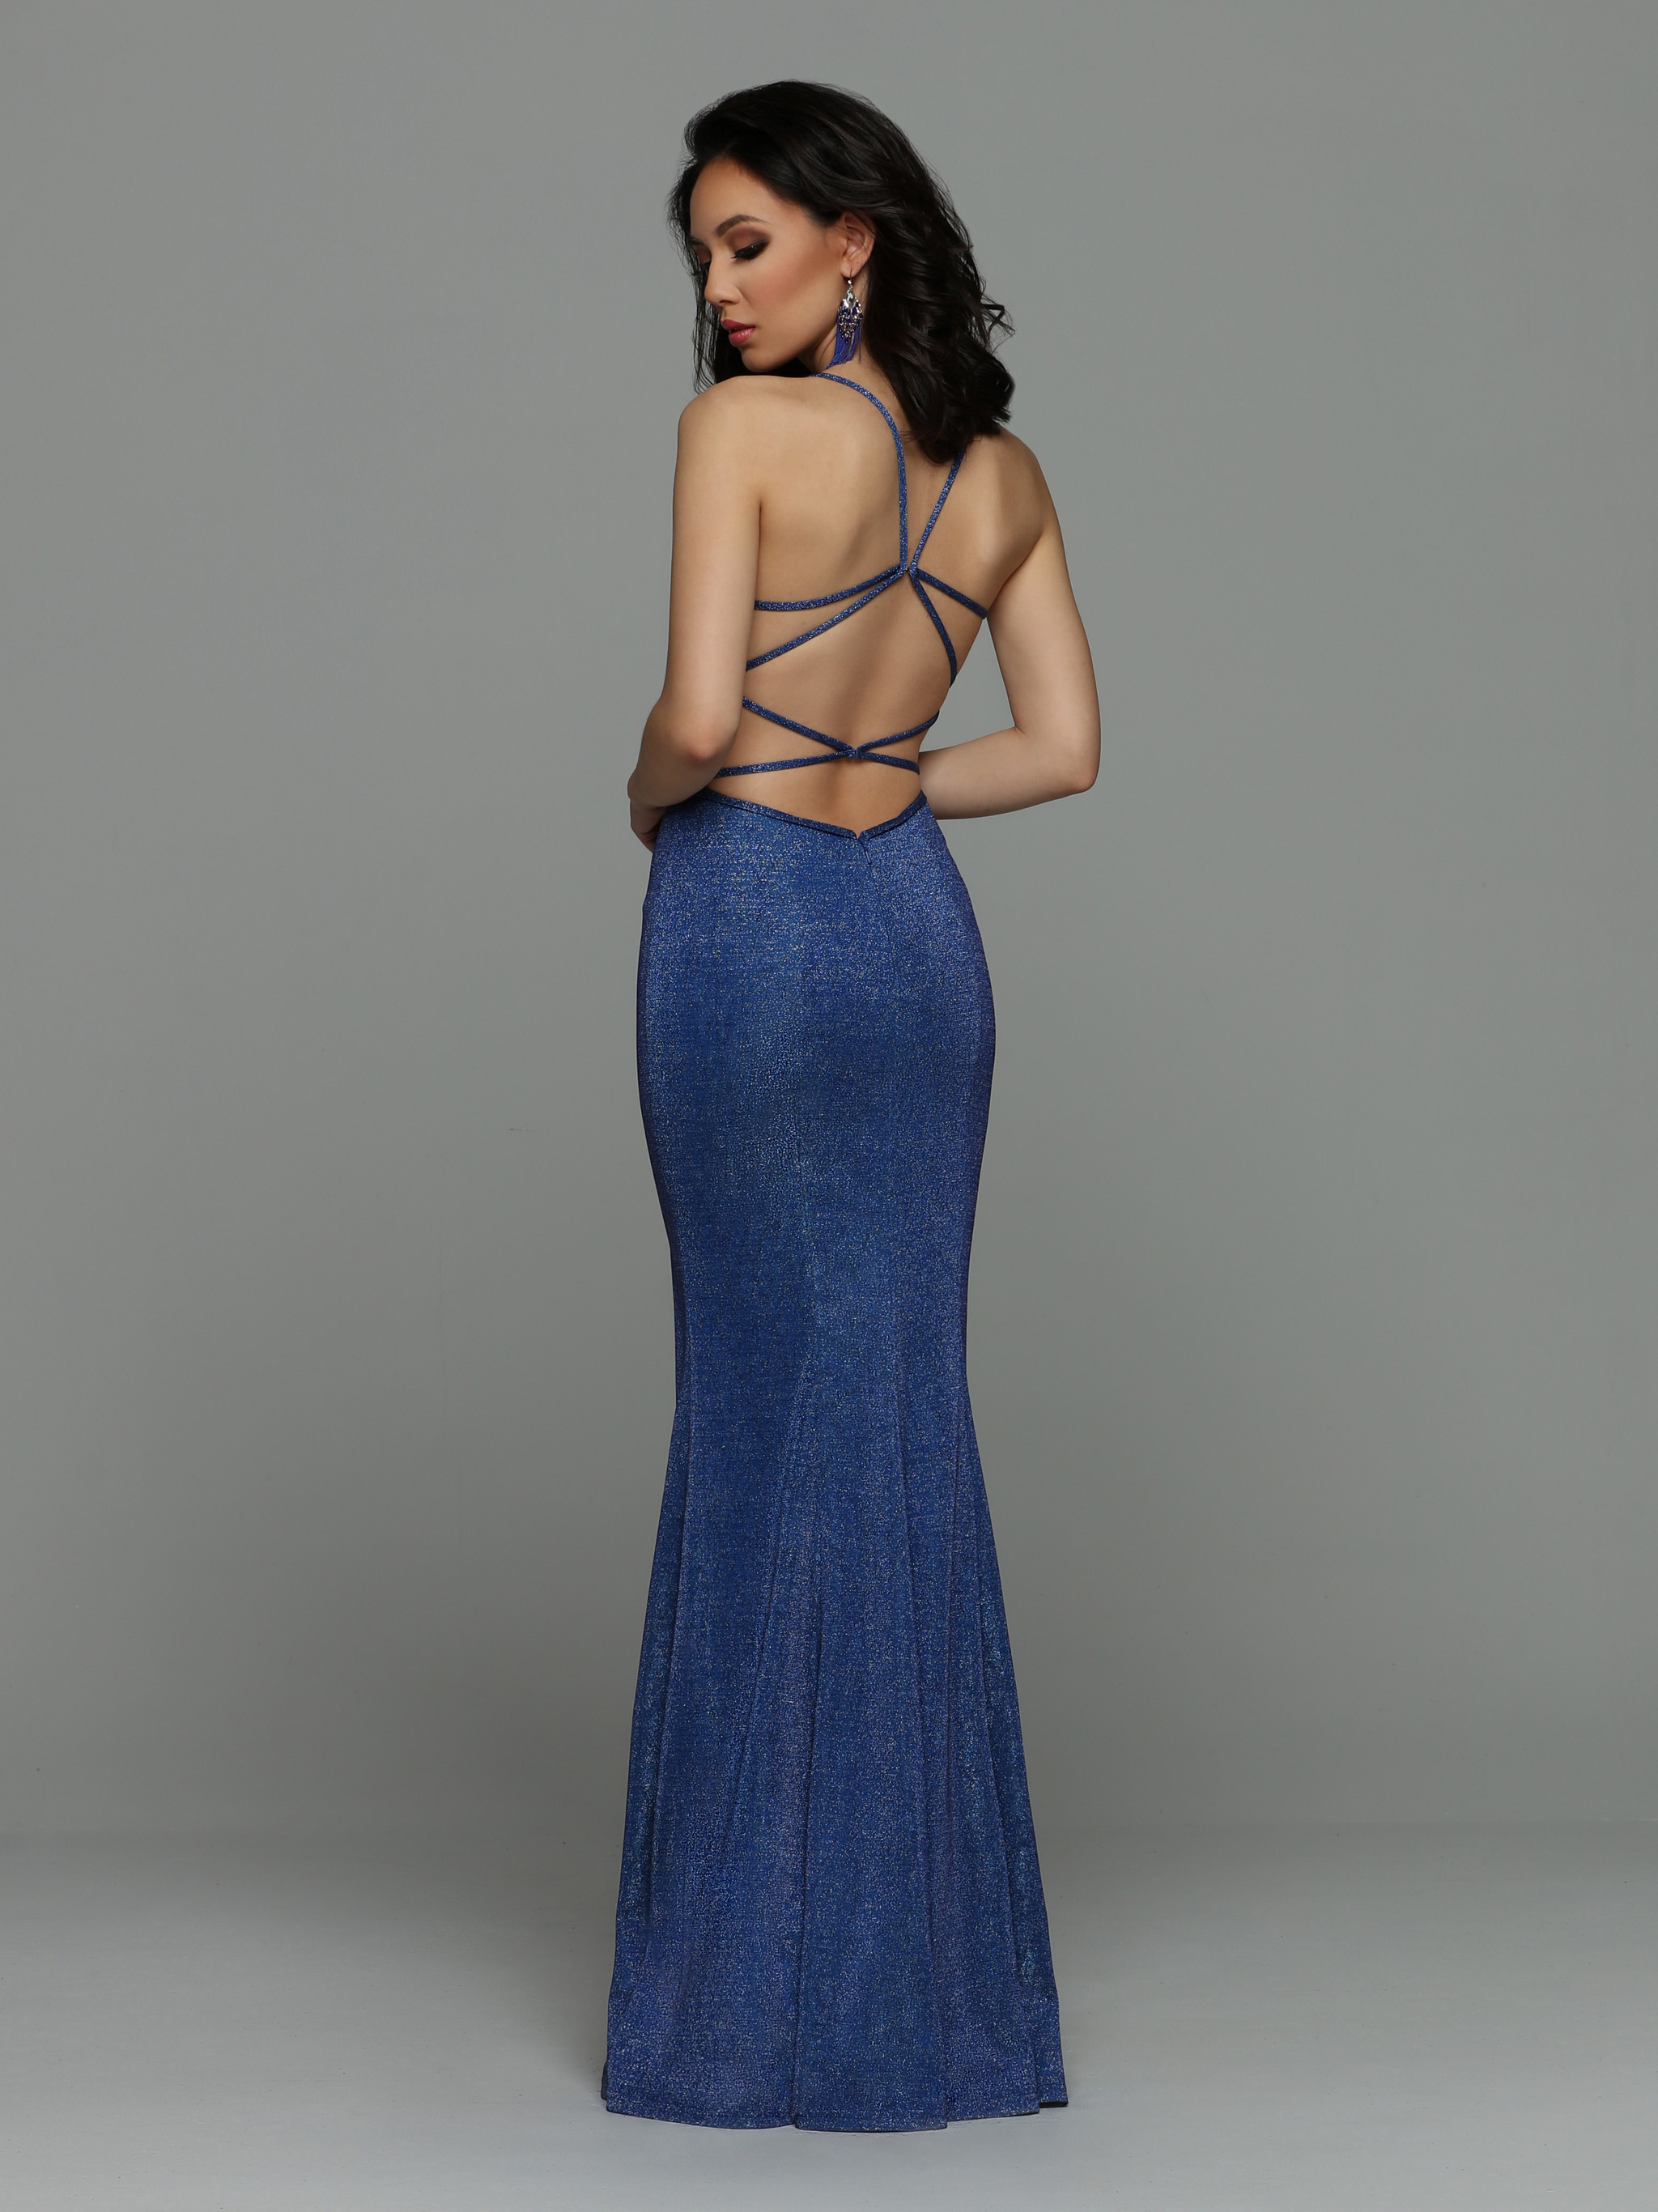 Back view of Style : 71955